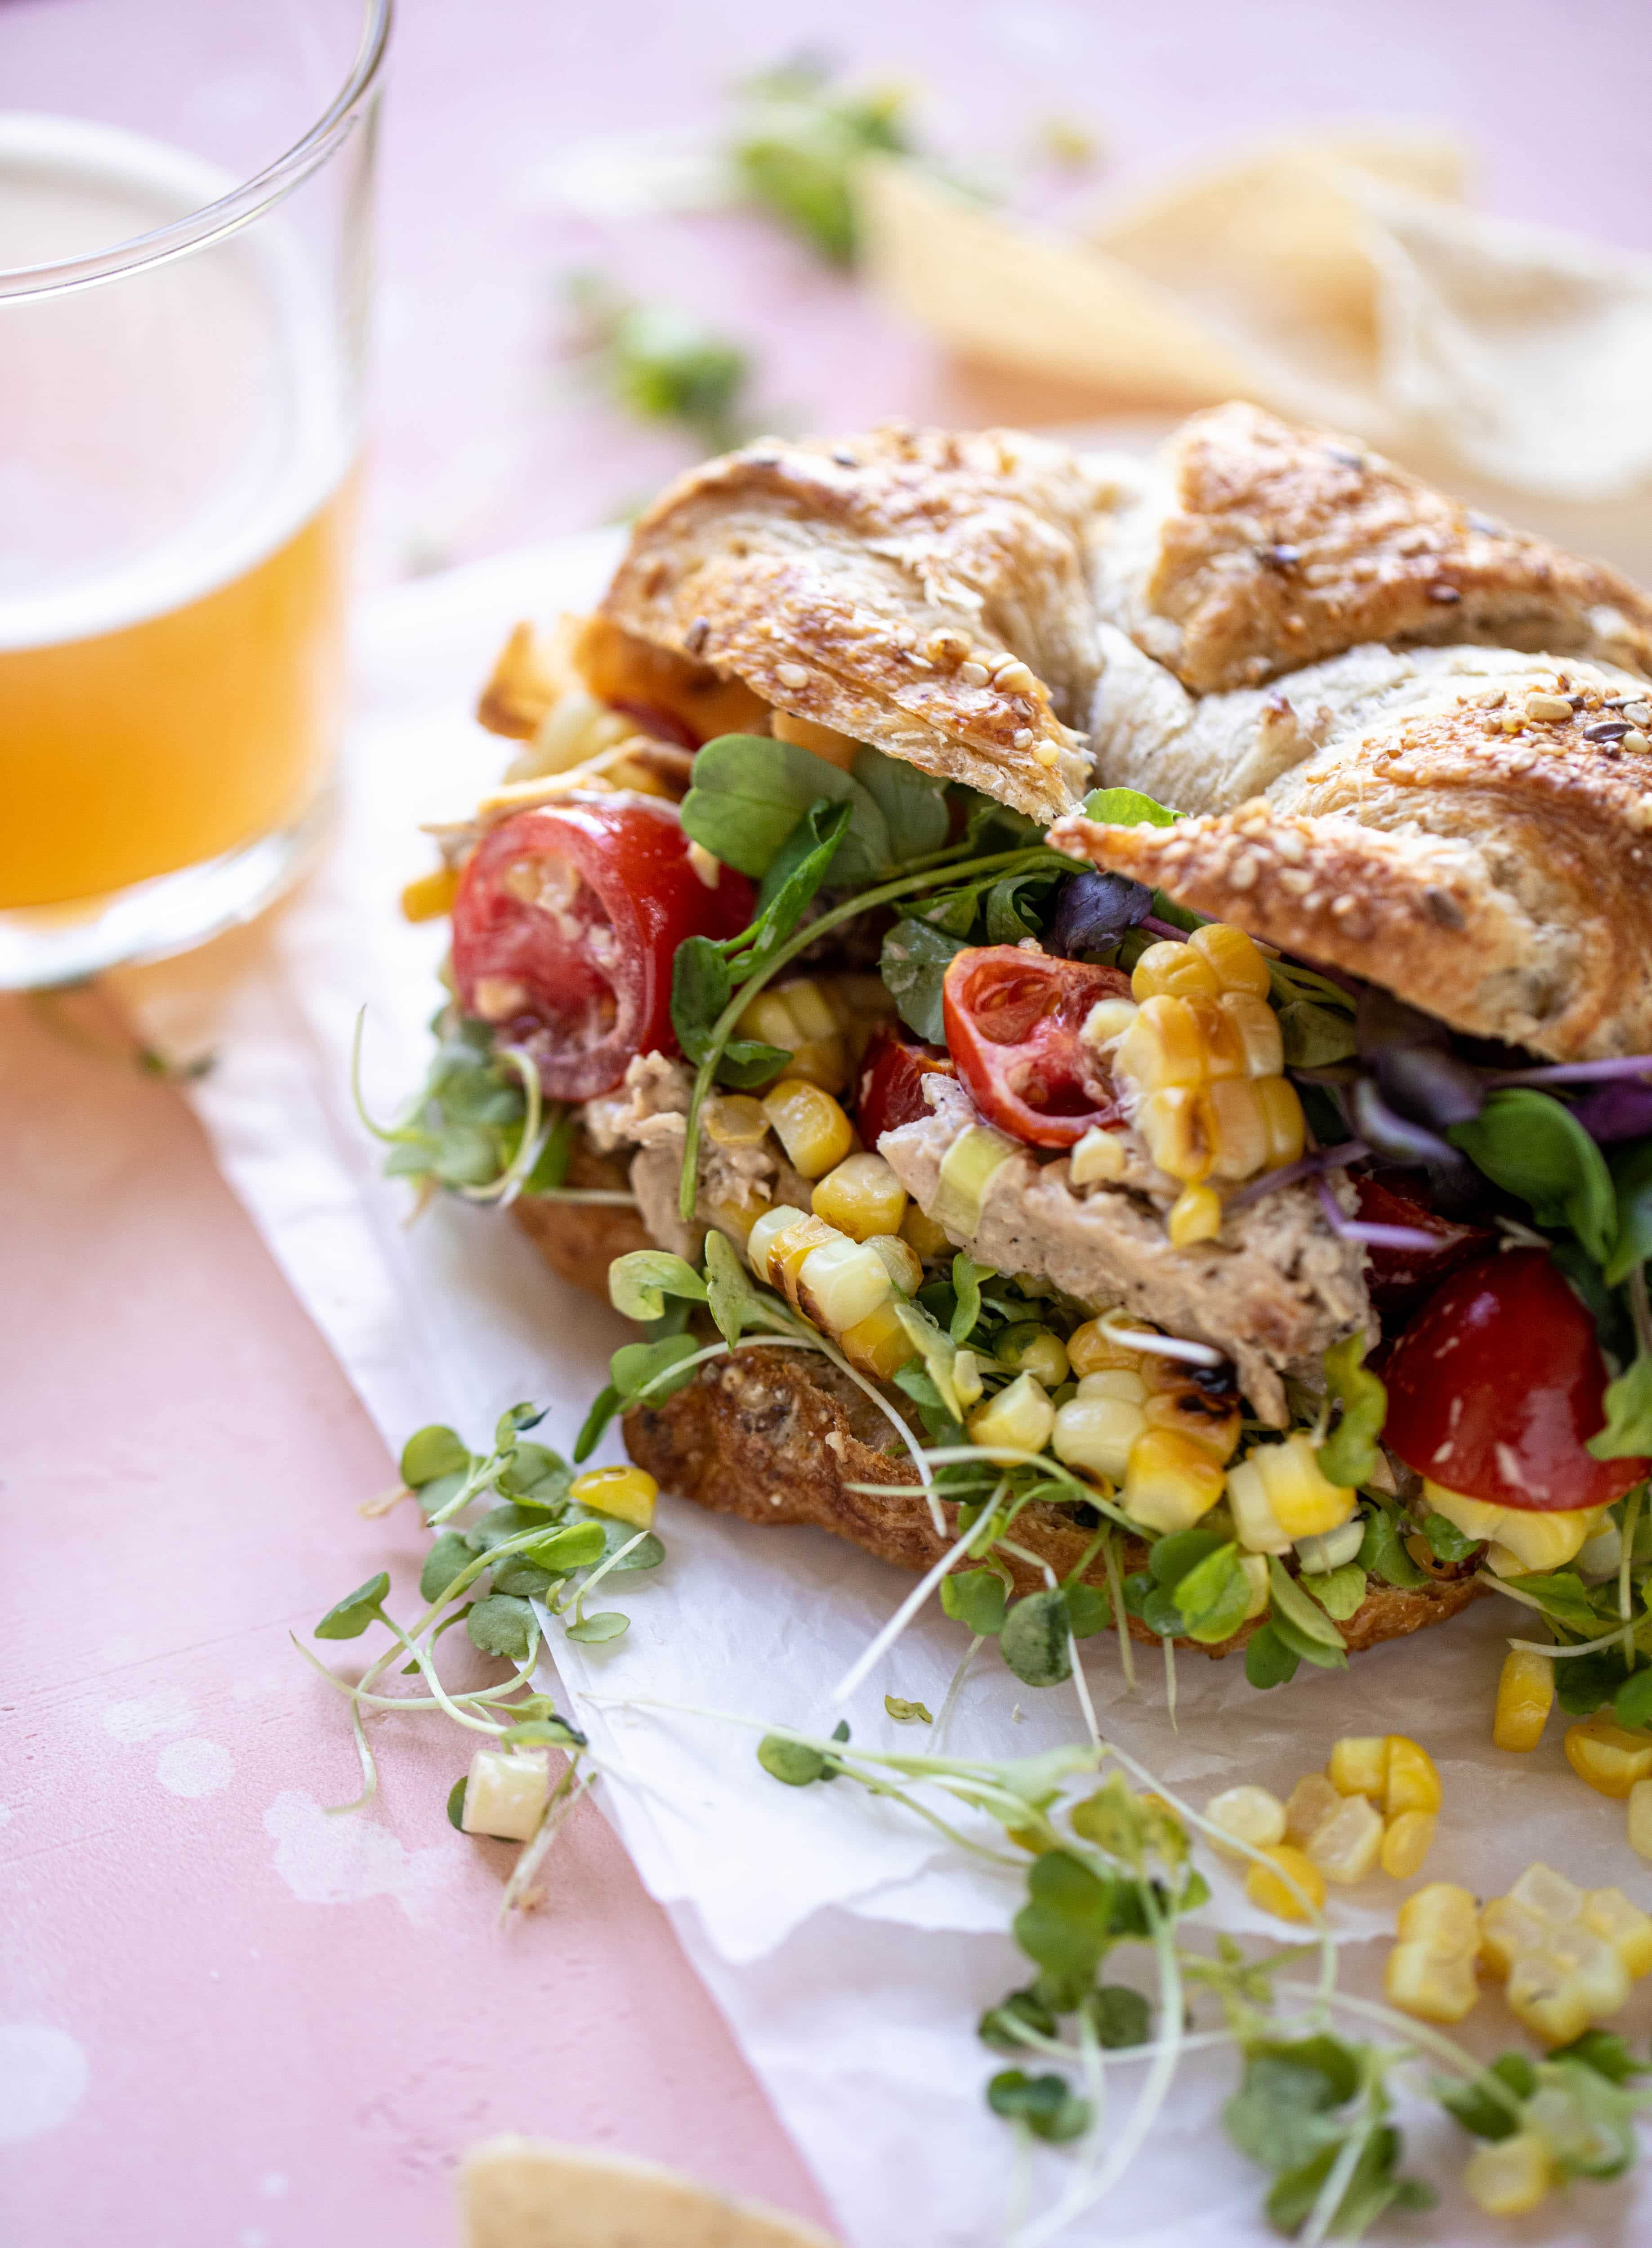 This smoky summer chicken salad is incredible! So much flavor from grilled chicken, sweet cherry tomatoes, corn, cheddar cheese and a secret ingredient!